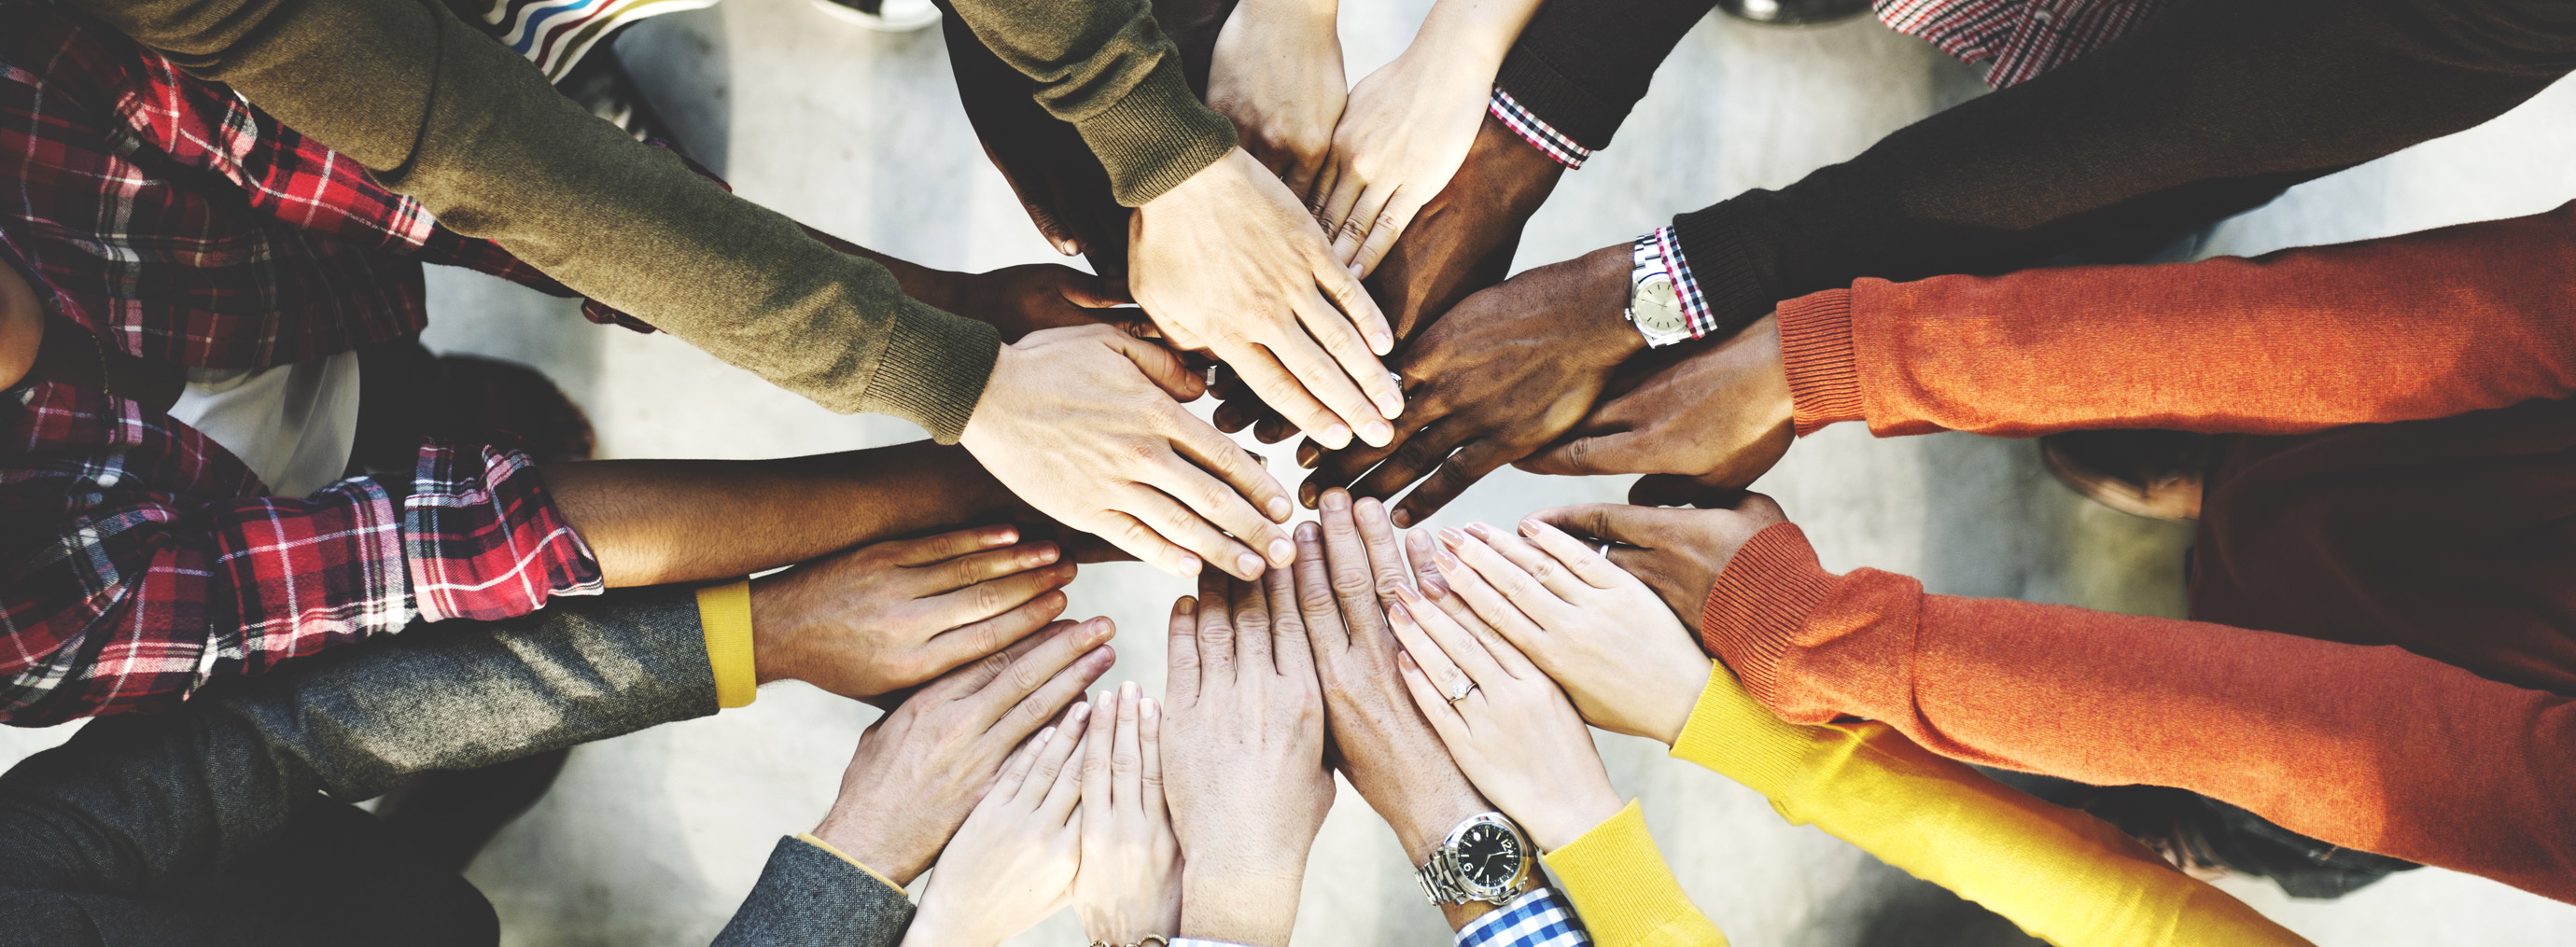 Group of people with their hands in a circle together